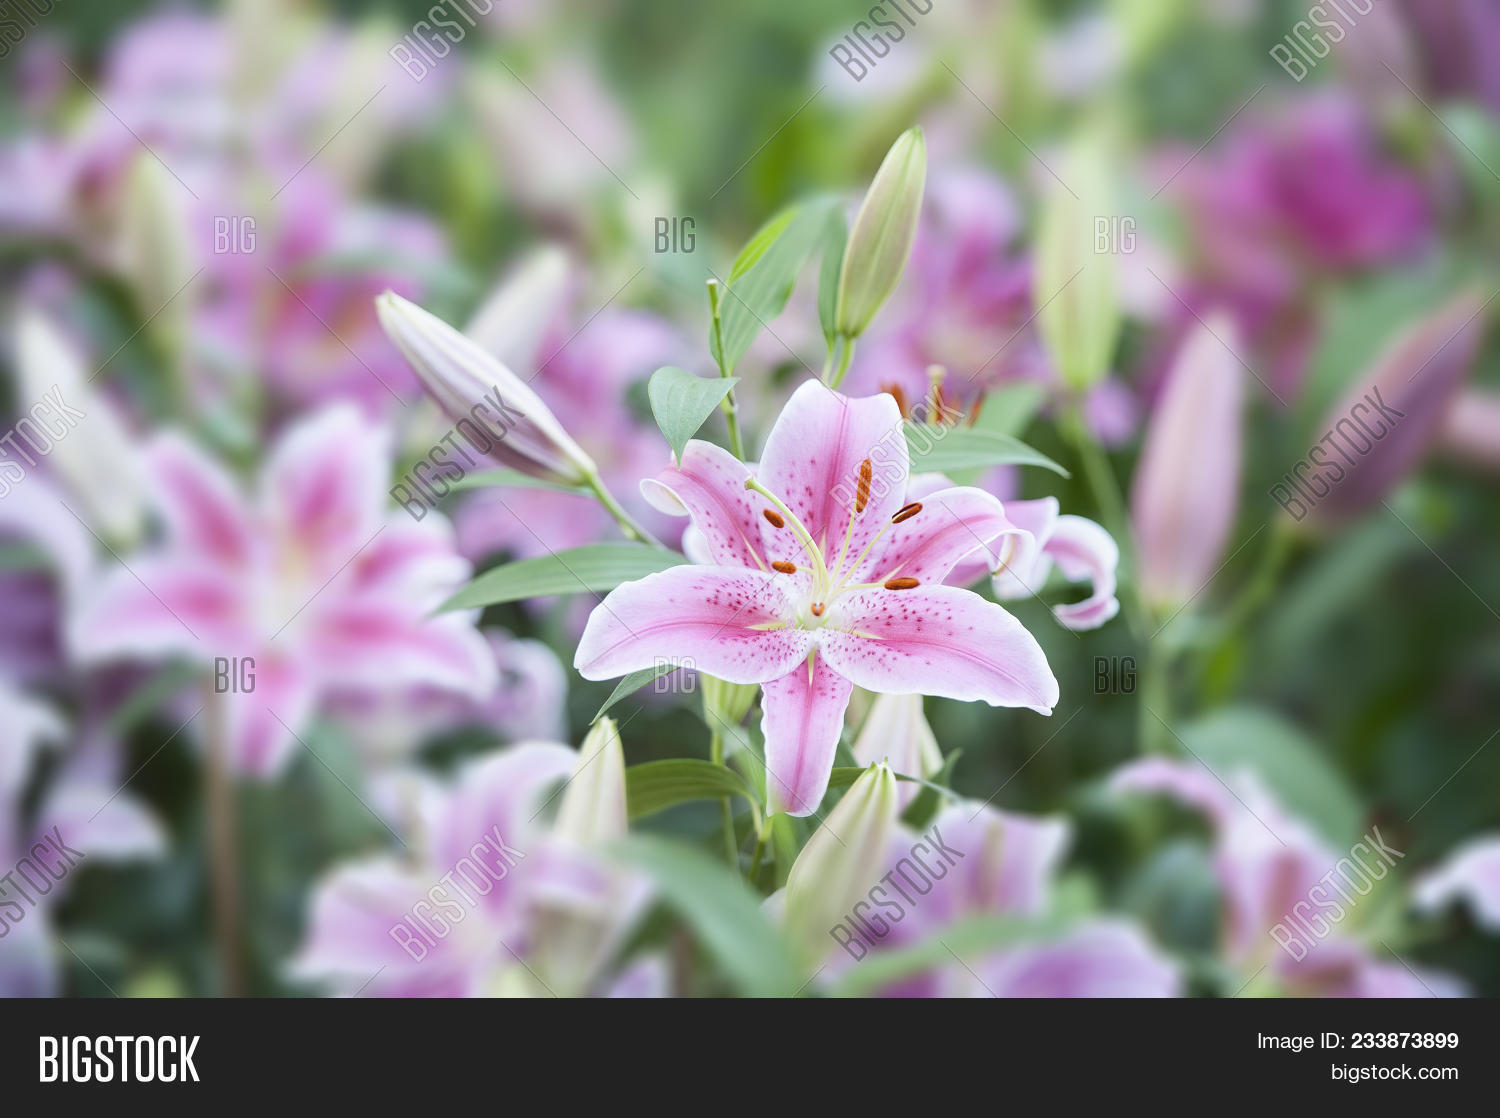 Lily Broad Leaves Image Photo Free Trial Bigstock